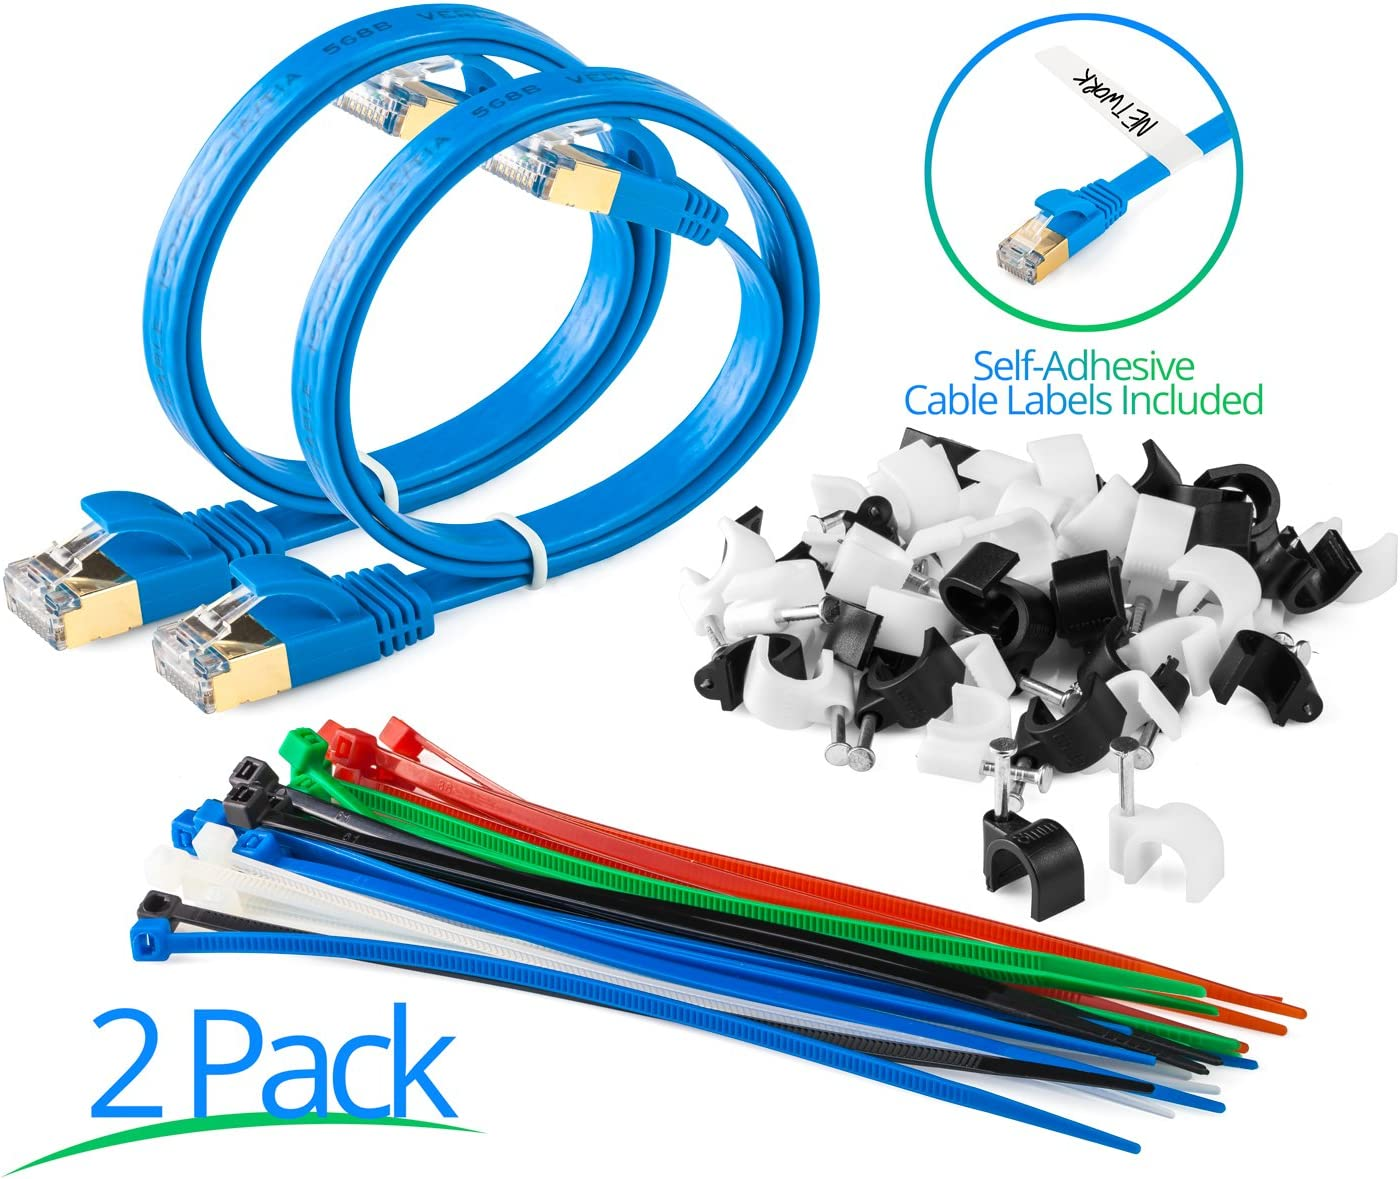 Maximm Cat7 Flat Ethernet Cable for Computers Network Components 5 Pack 600 MHz Pure Copper RJ45 Gold-Plated Connectors 12 Feet Blue